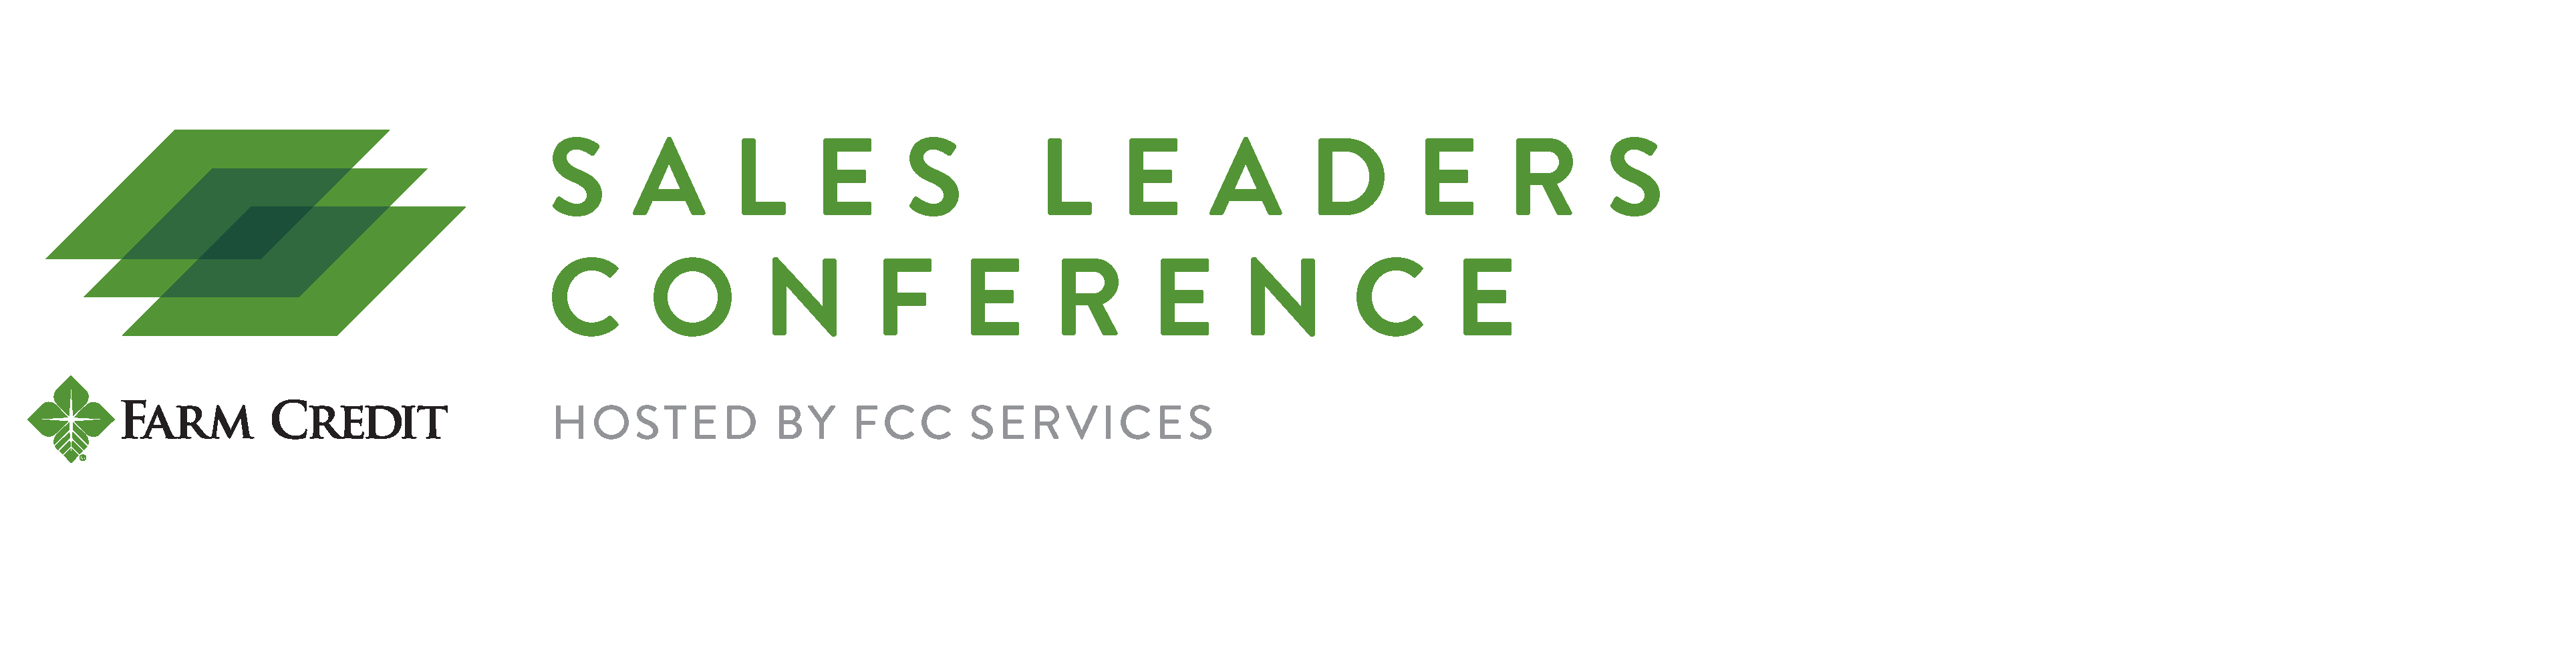 2020 Sales Leaders Conference